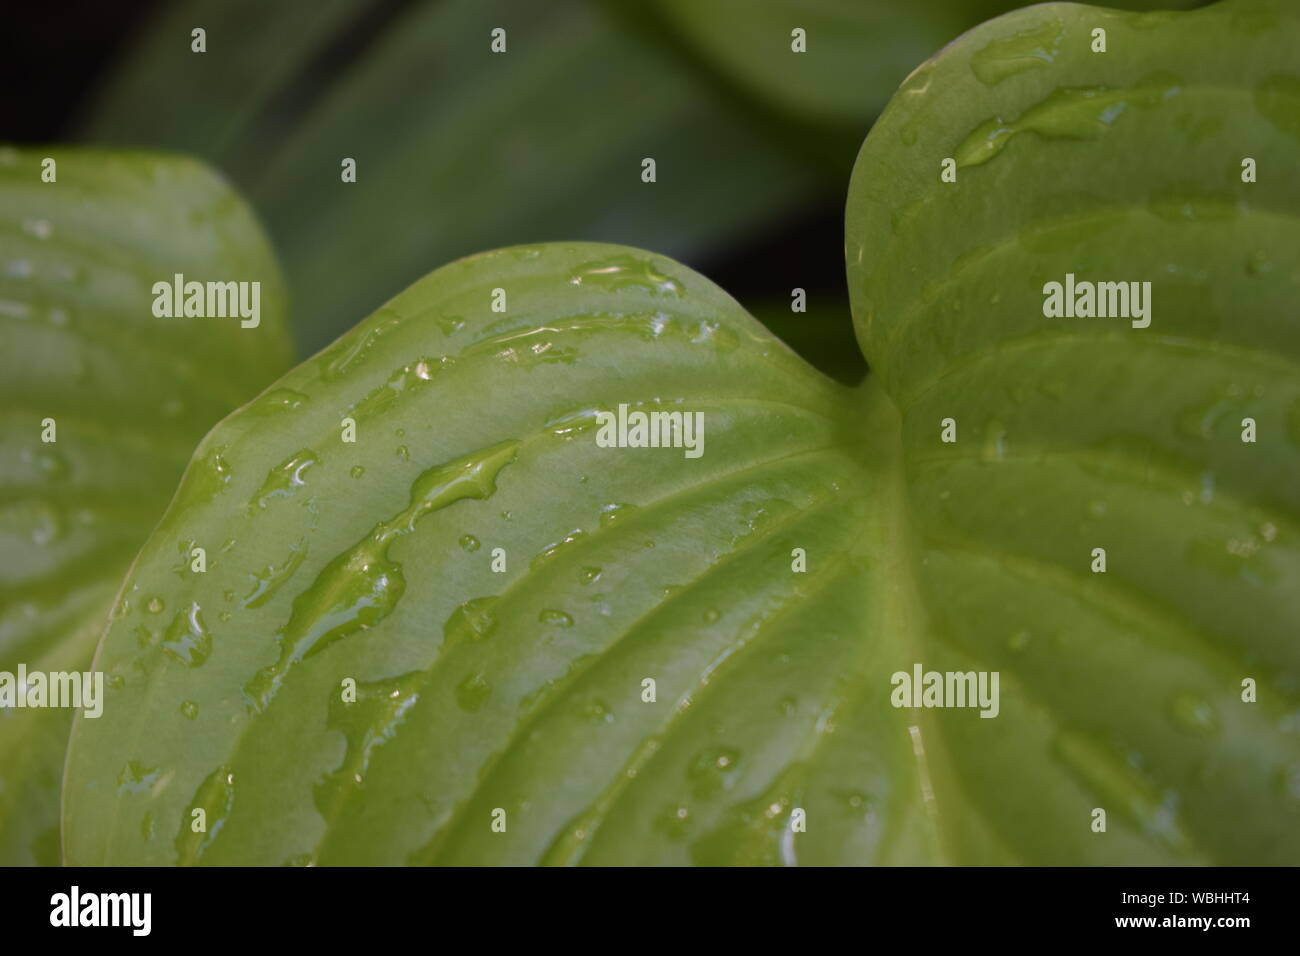 Beautiful tropical Hosta leaves with drops of water. Ornamental Hosta plant for landscaping park and garden design. Large lush green leaves with strea Stock Photo